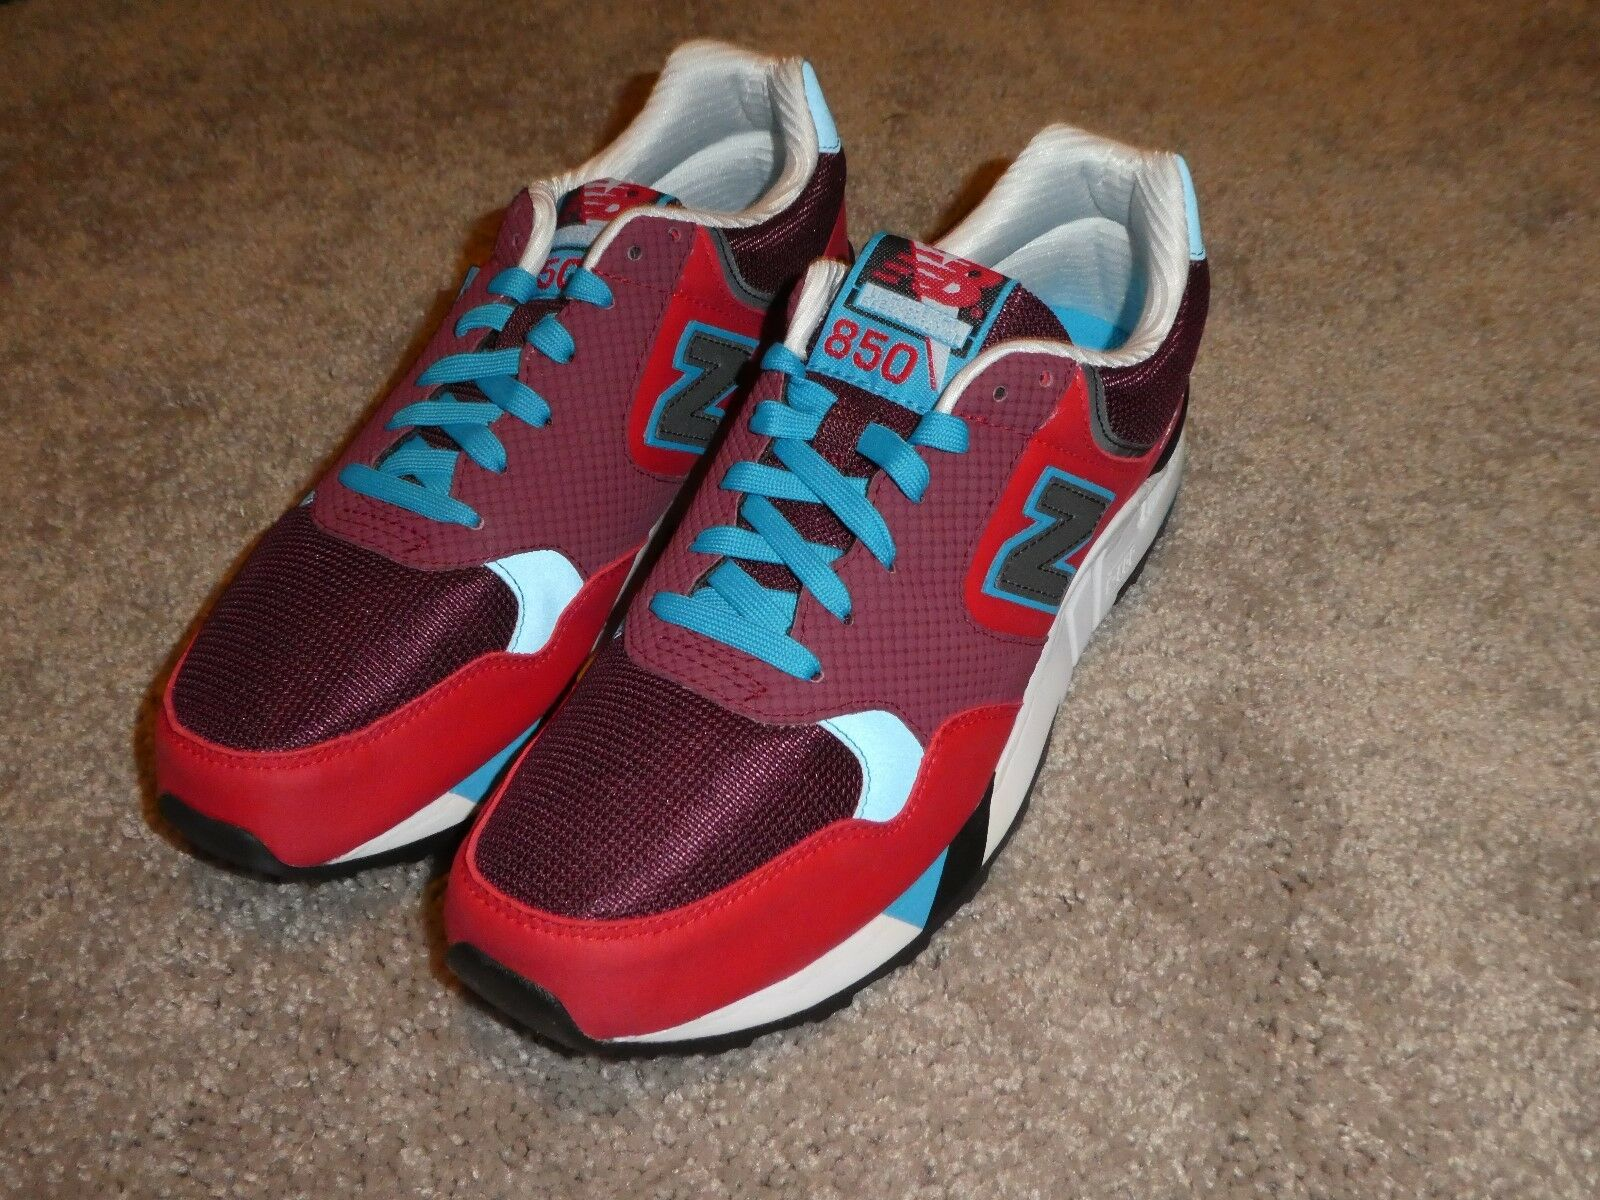 New New New Balance Men's M850BR shoes size 9.5 style 850 sneakers 0a1348